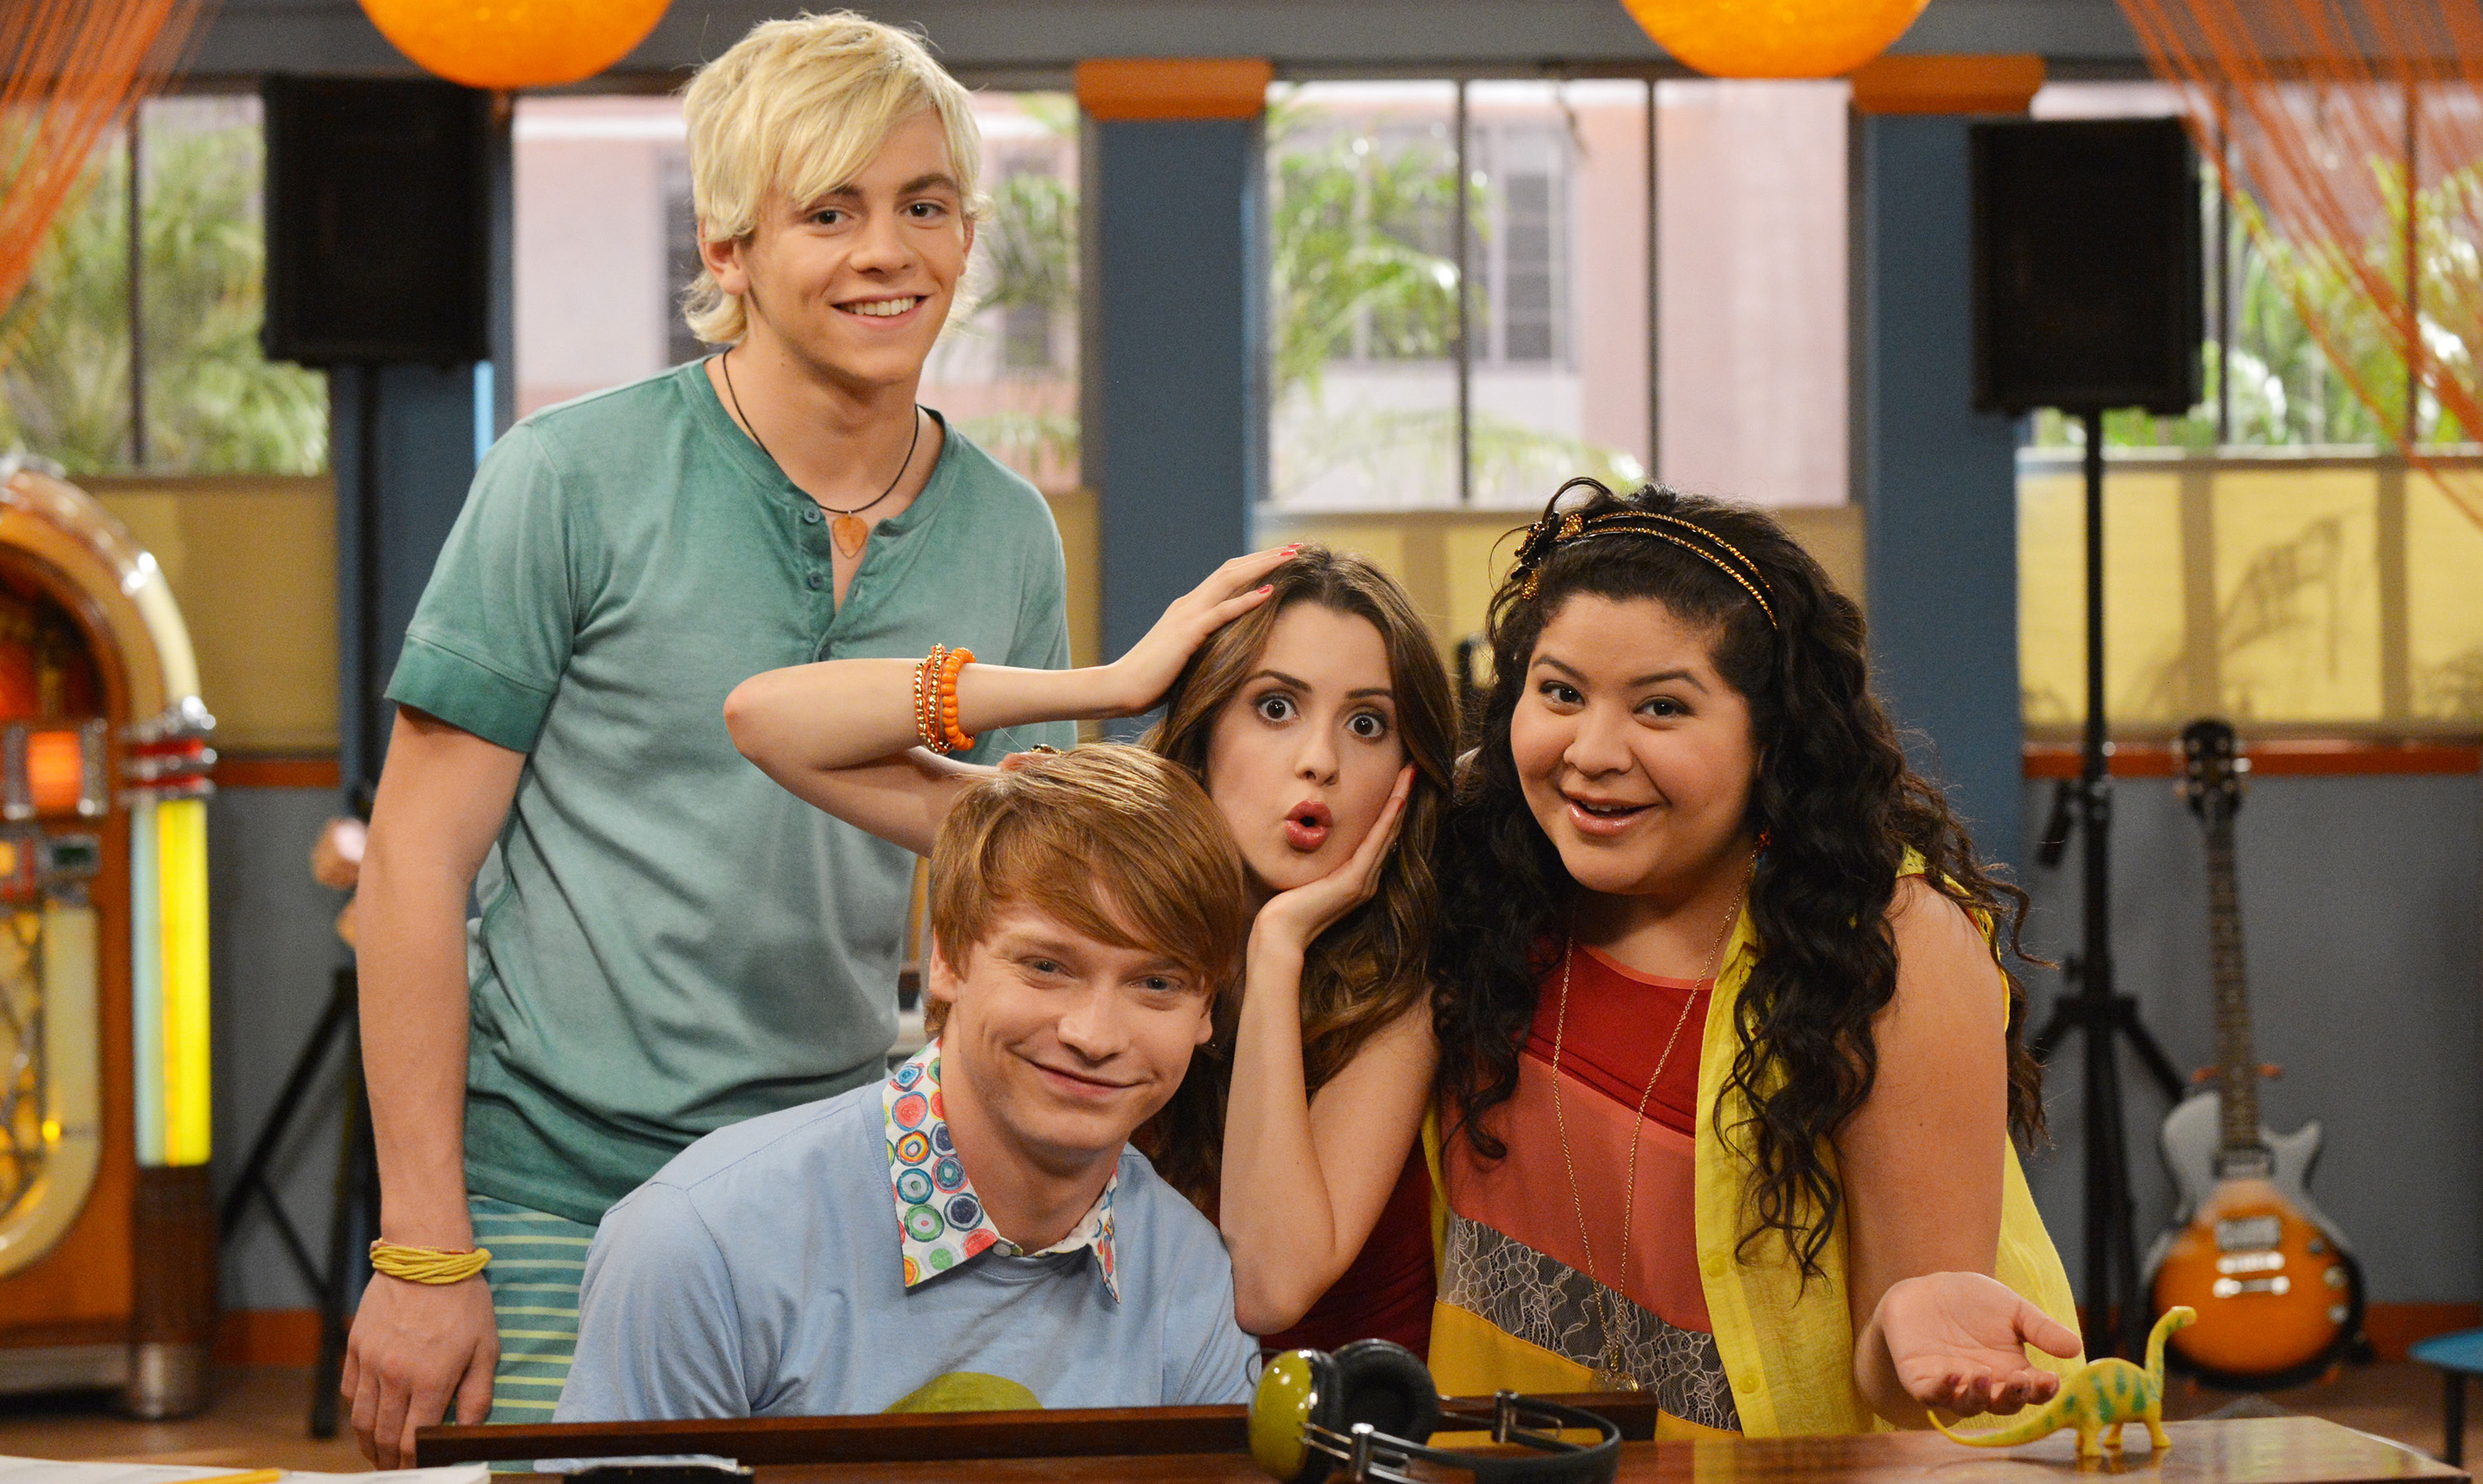 Is austin moon and ally dawson dating in real life